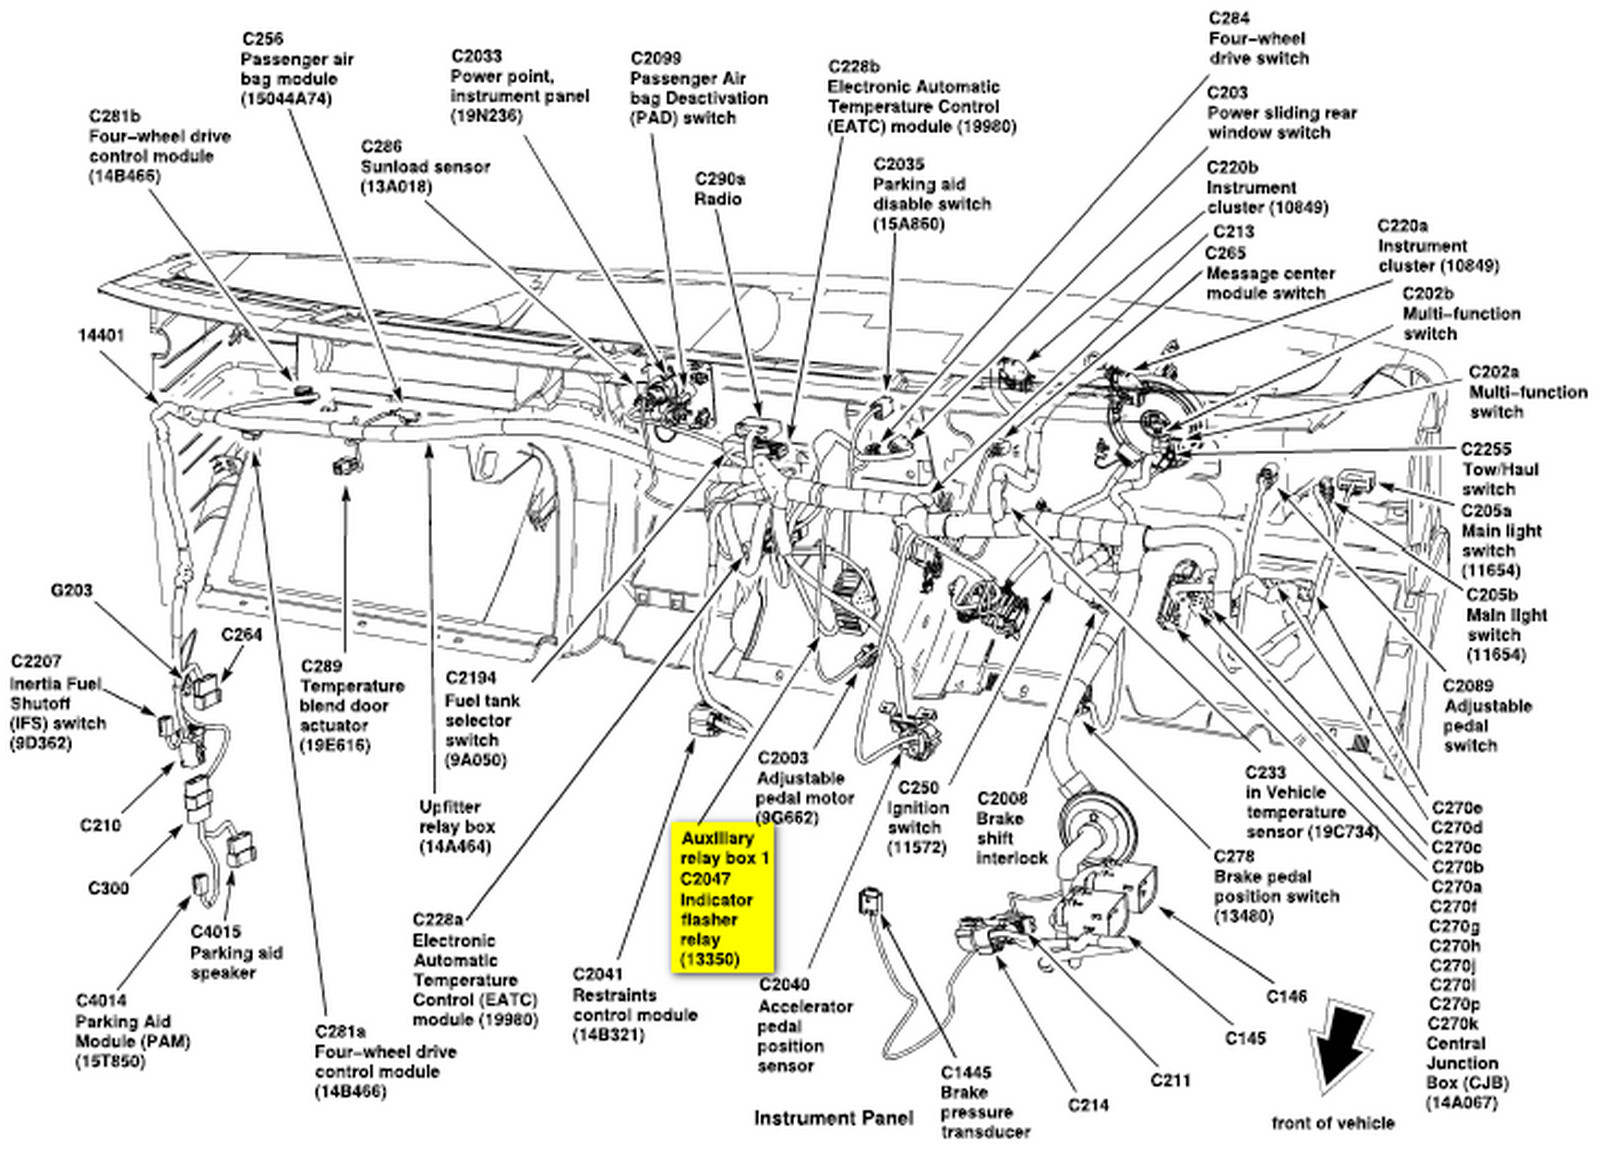 2013 Ford E 450 Fuse Box Diagram on 2001 cougar fuse and relay diagram